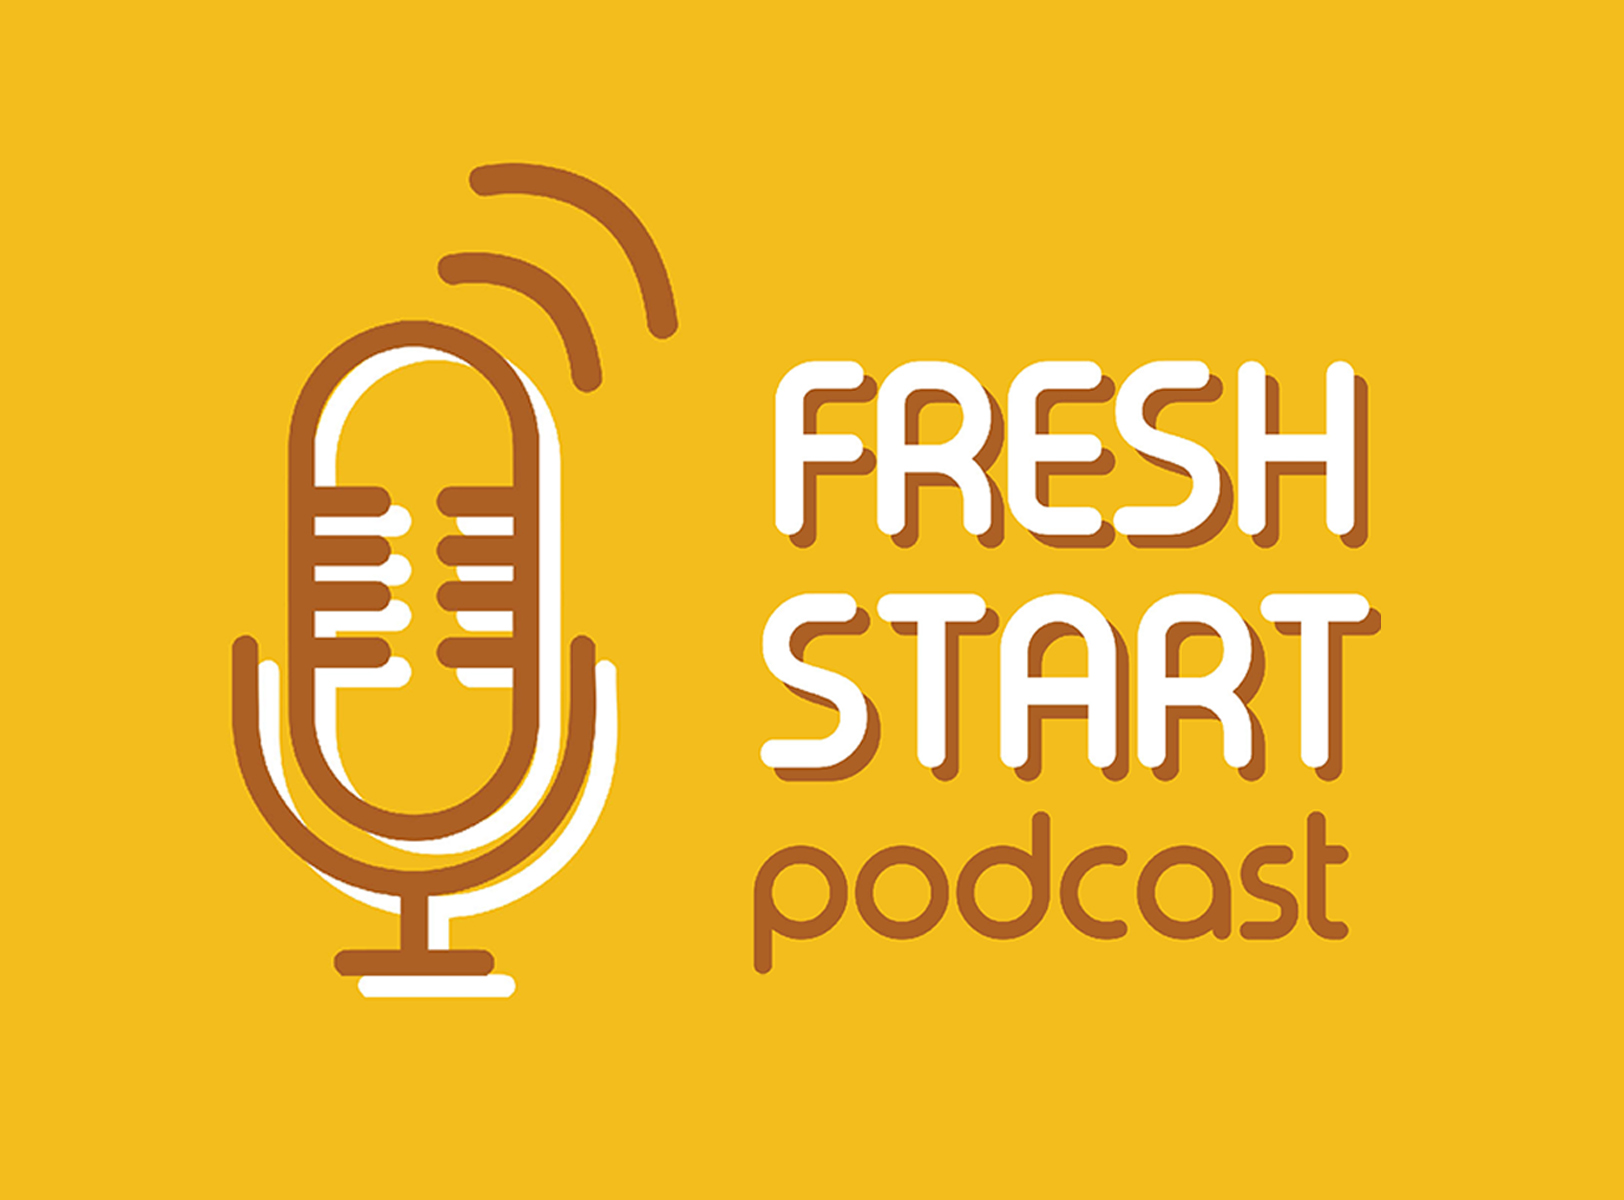 Fresh Start: Podcast News (2/6/2019 Wed.)